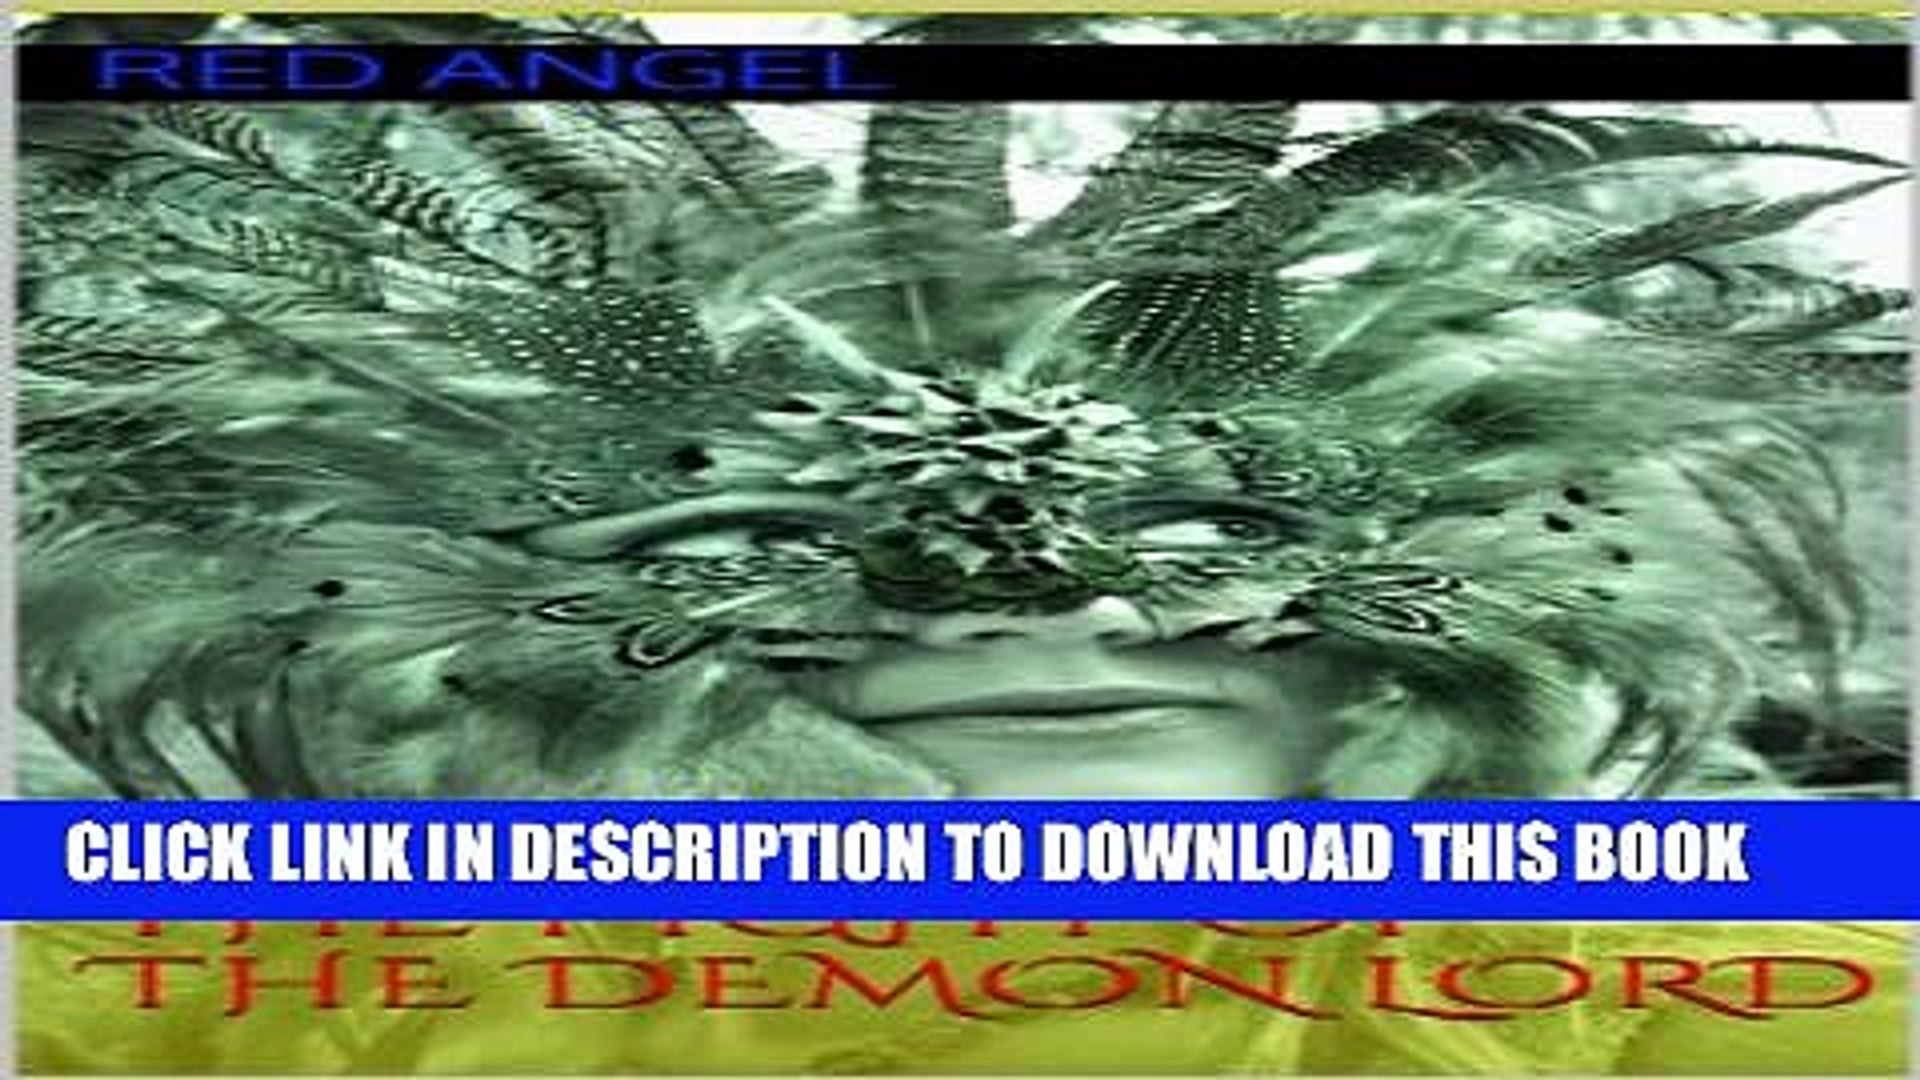 [PDF] The Fight of the Demon Lord (Demon Lord s Life Book 1) Full Collection